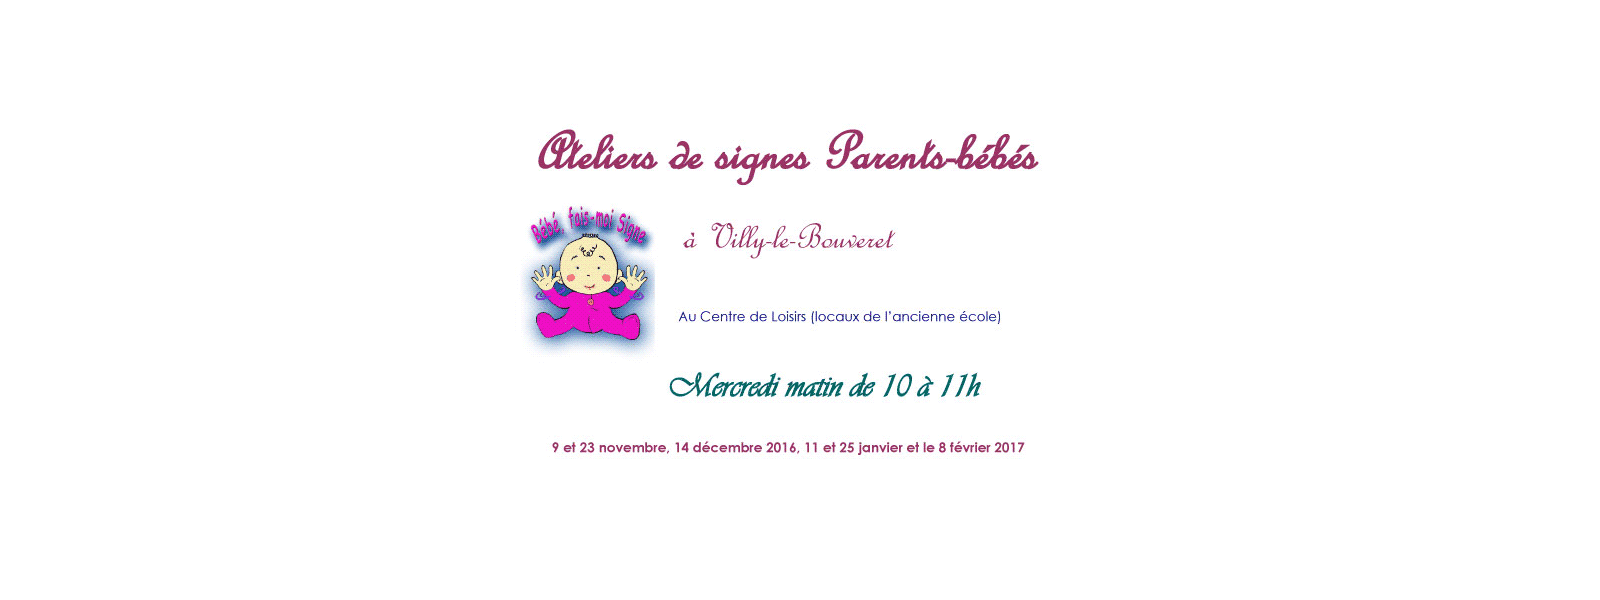 Ateliers de signes parents- bébés à Villy-le-Bouveret